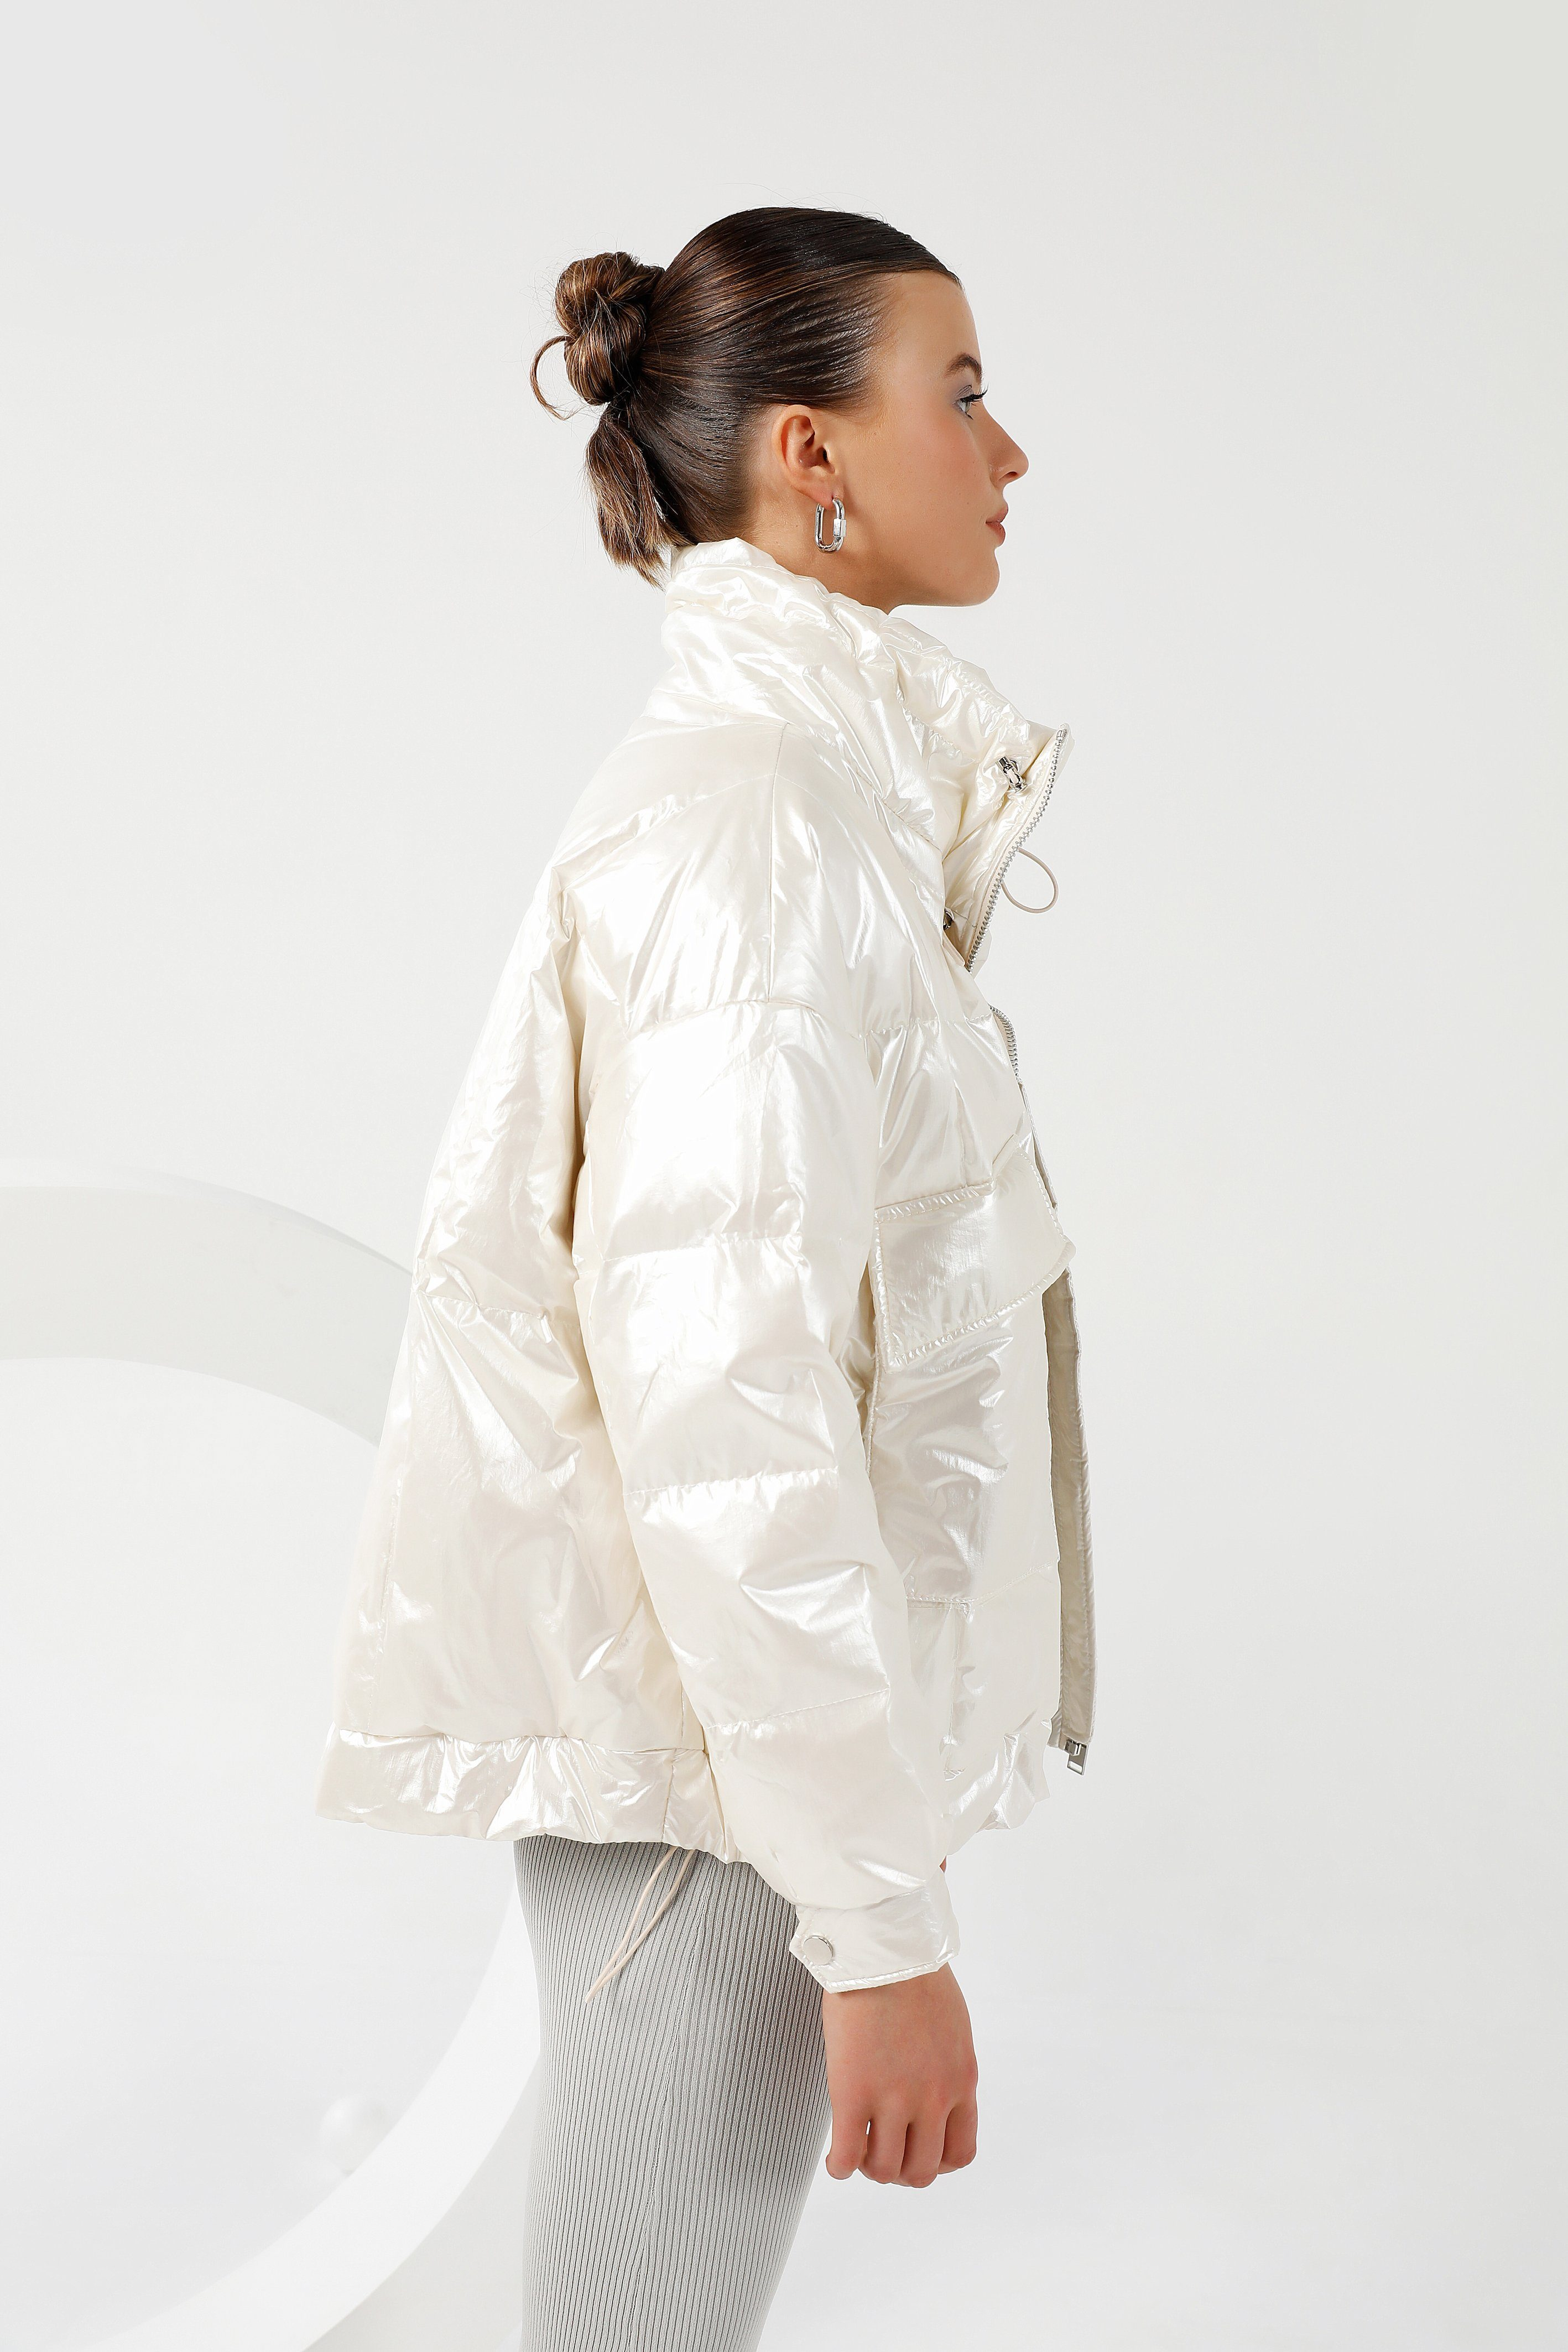 Saturn Puffer Jacket - Pearl White Medium Jacket Toast Society